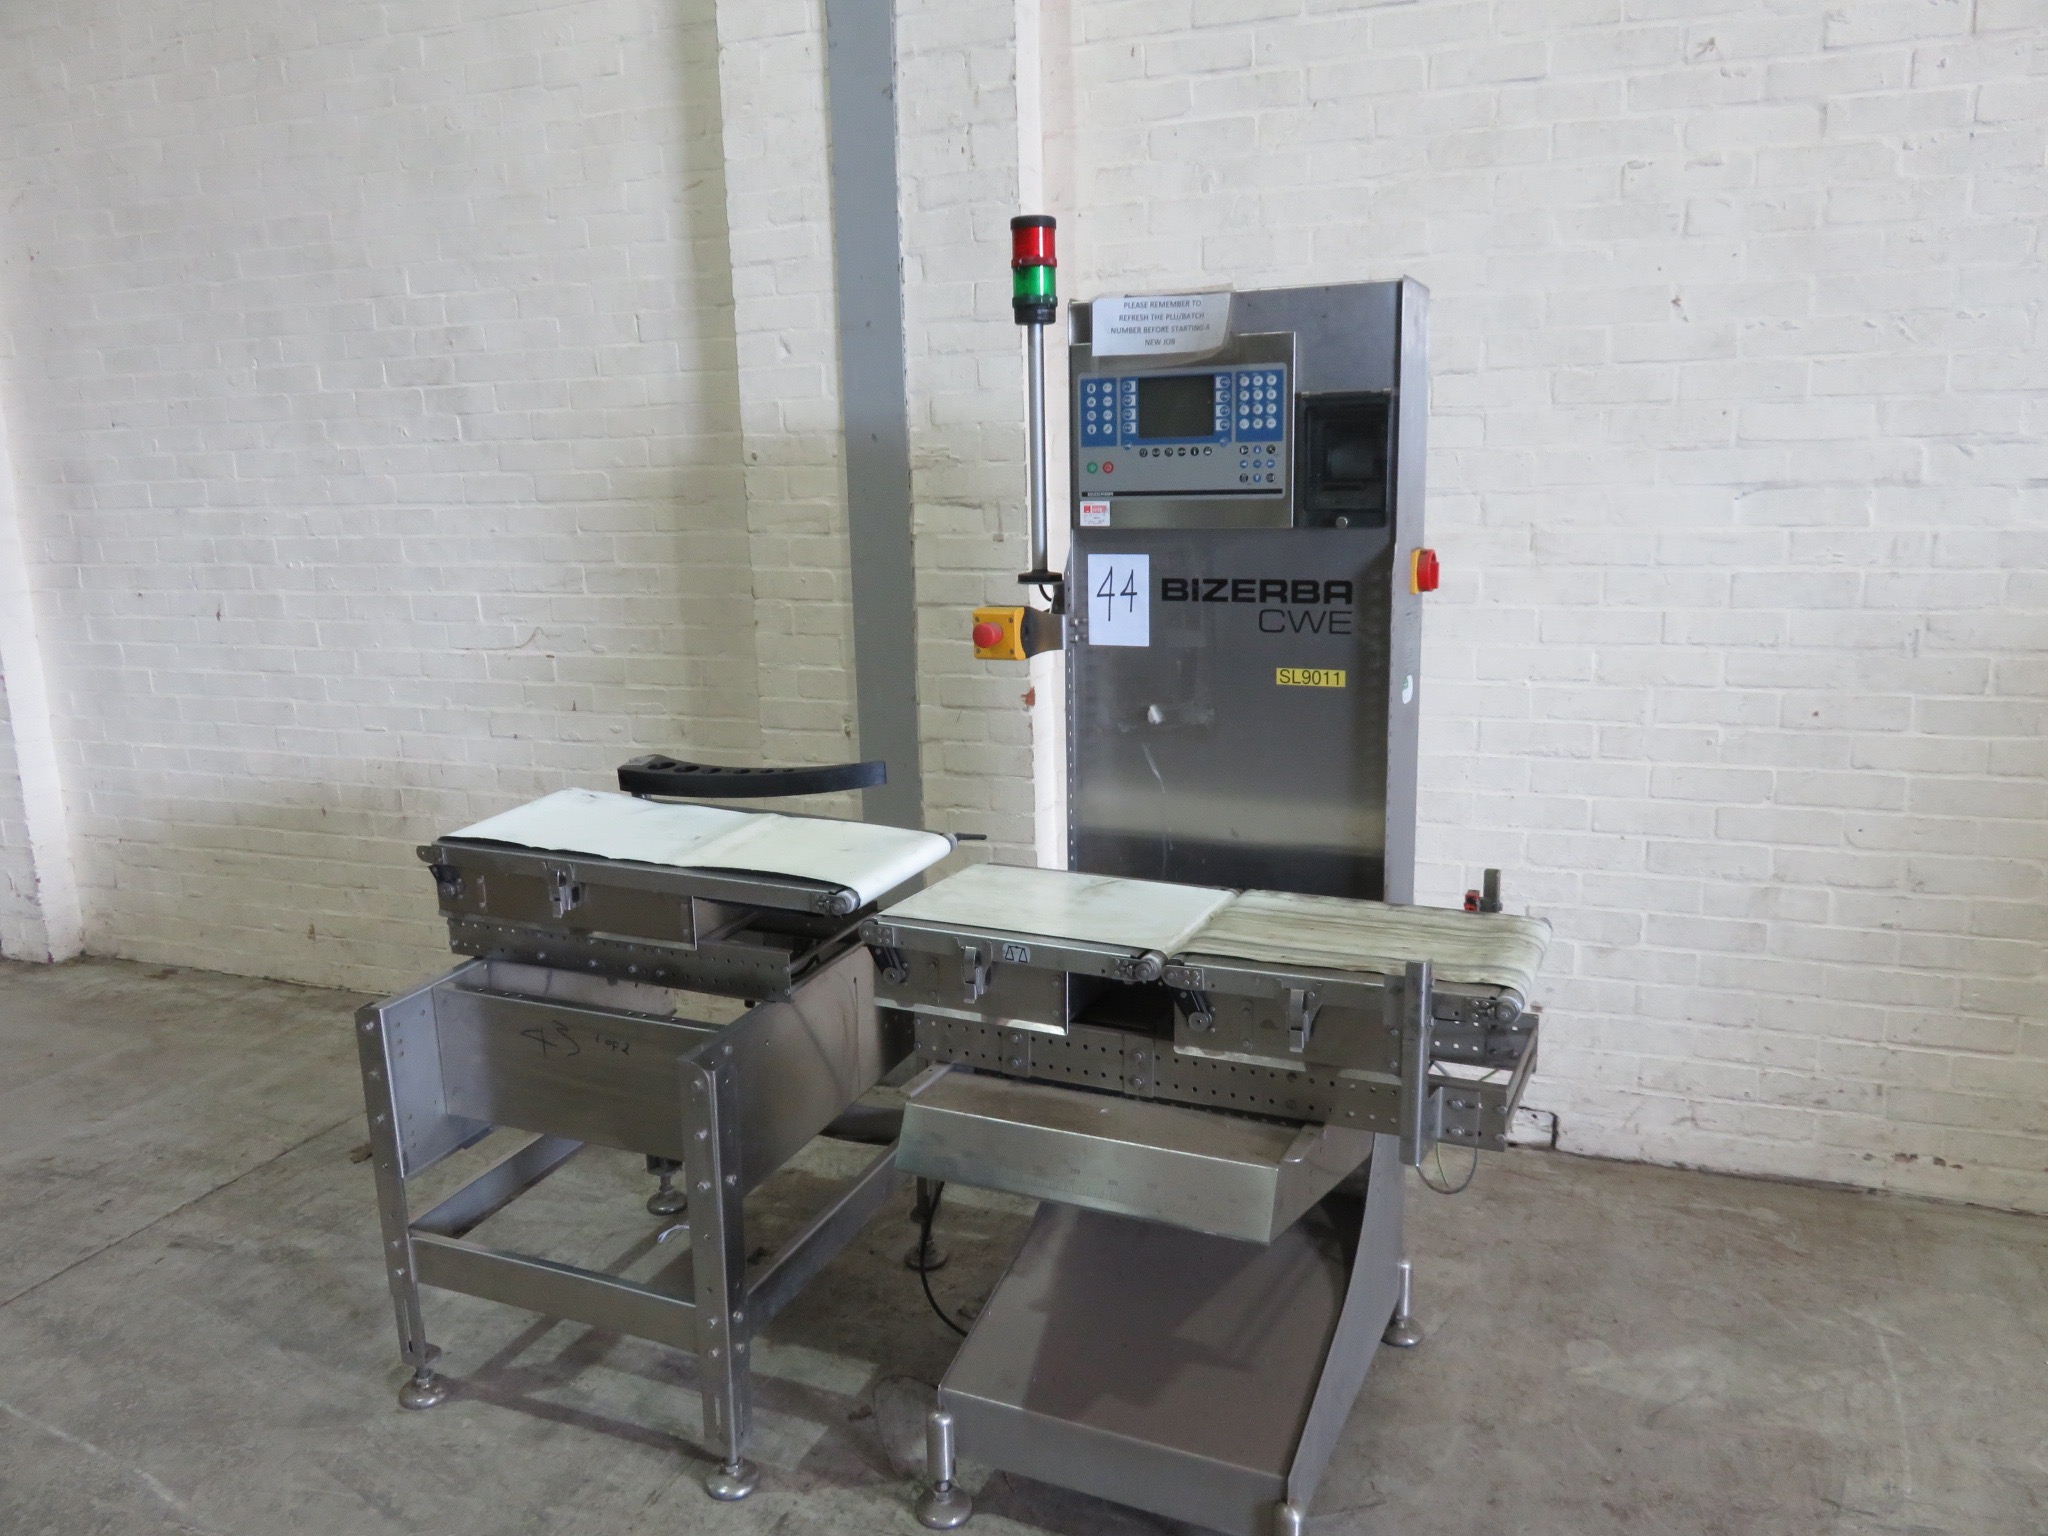 Lot 44 - Bizerba CWE Check Weigher. Platform 420 long x 300 wide. With printer. Push arm reject LIFT OUT £10